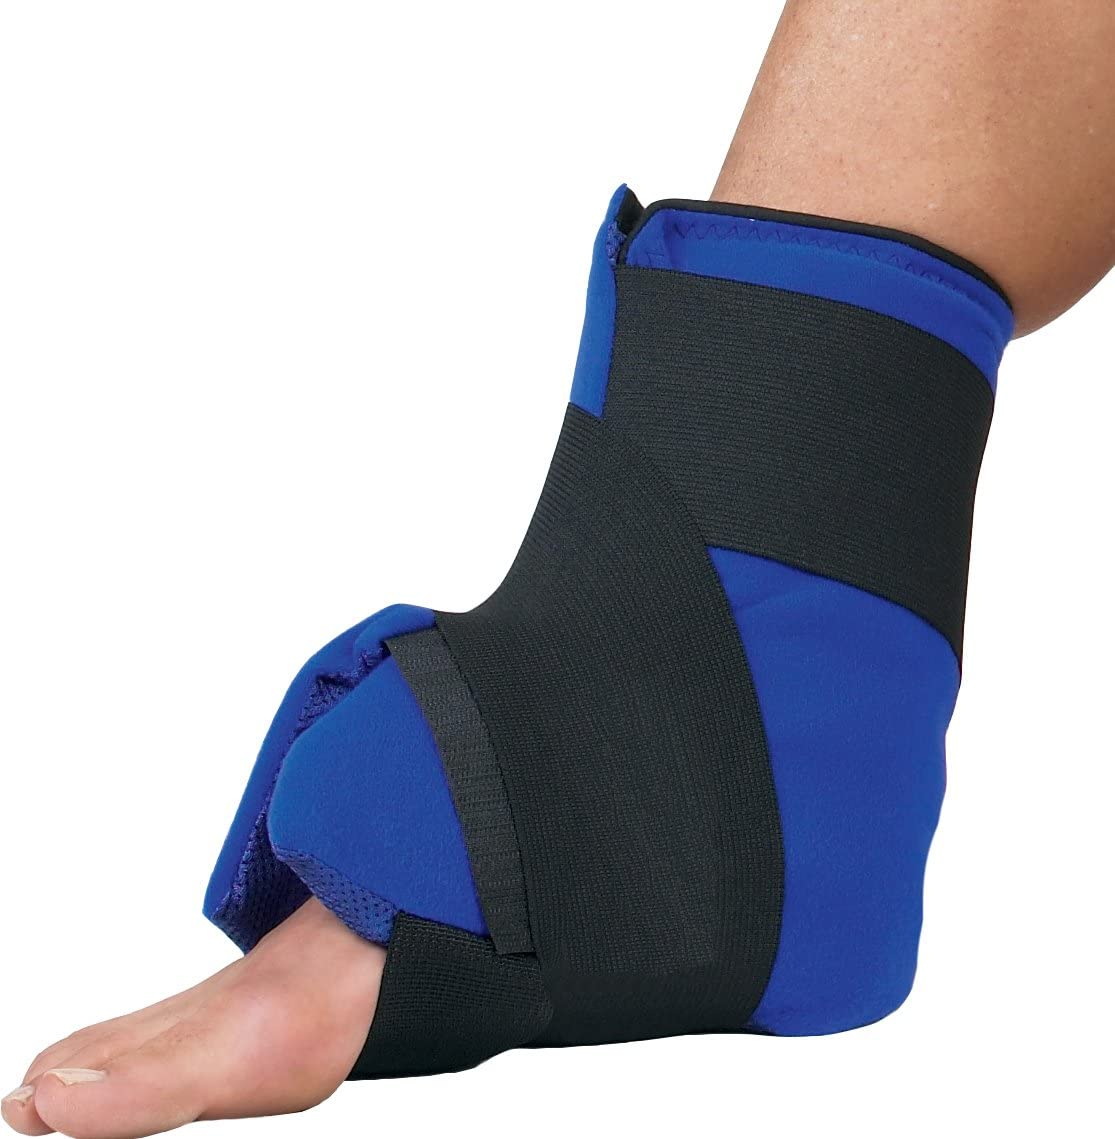 DonJoy DuraSoft Cold Therapy Foot and Max 40% OFF Ankle Mat 4 Ice with specialty shop Wrap